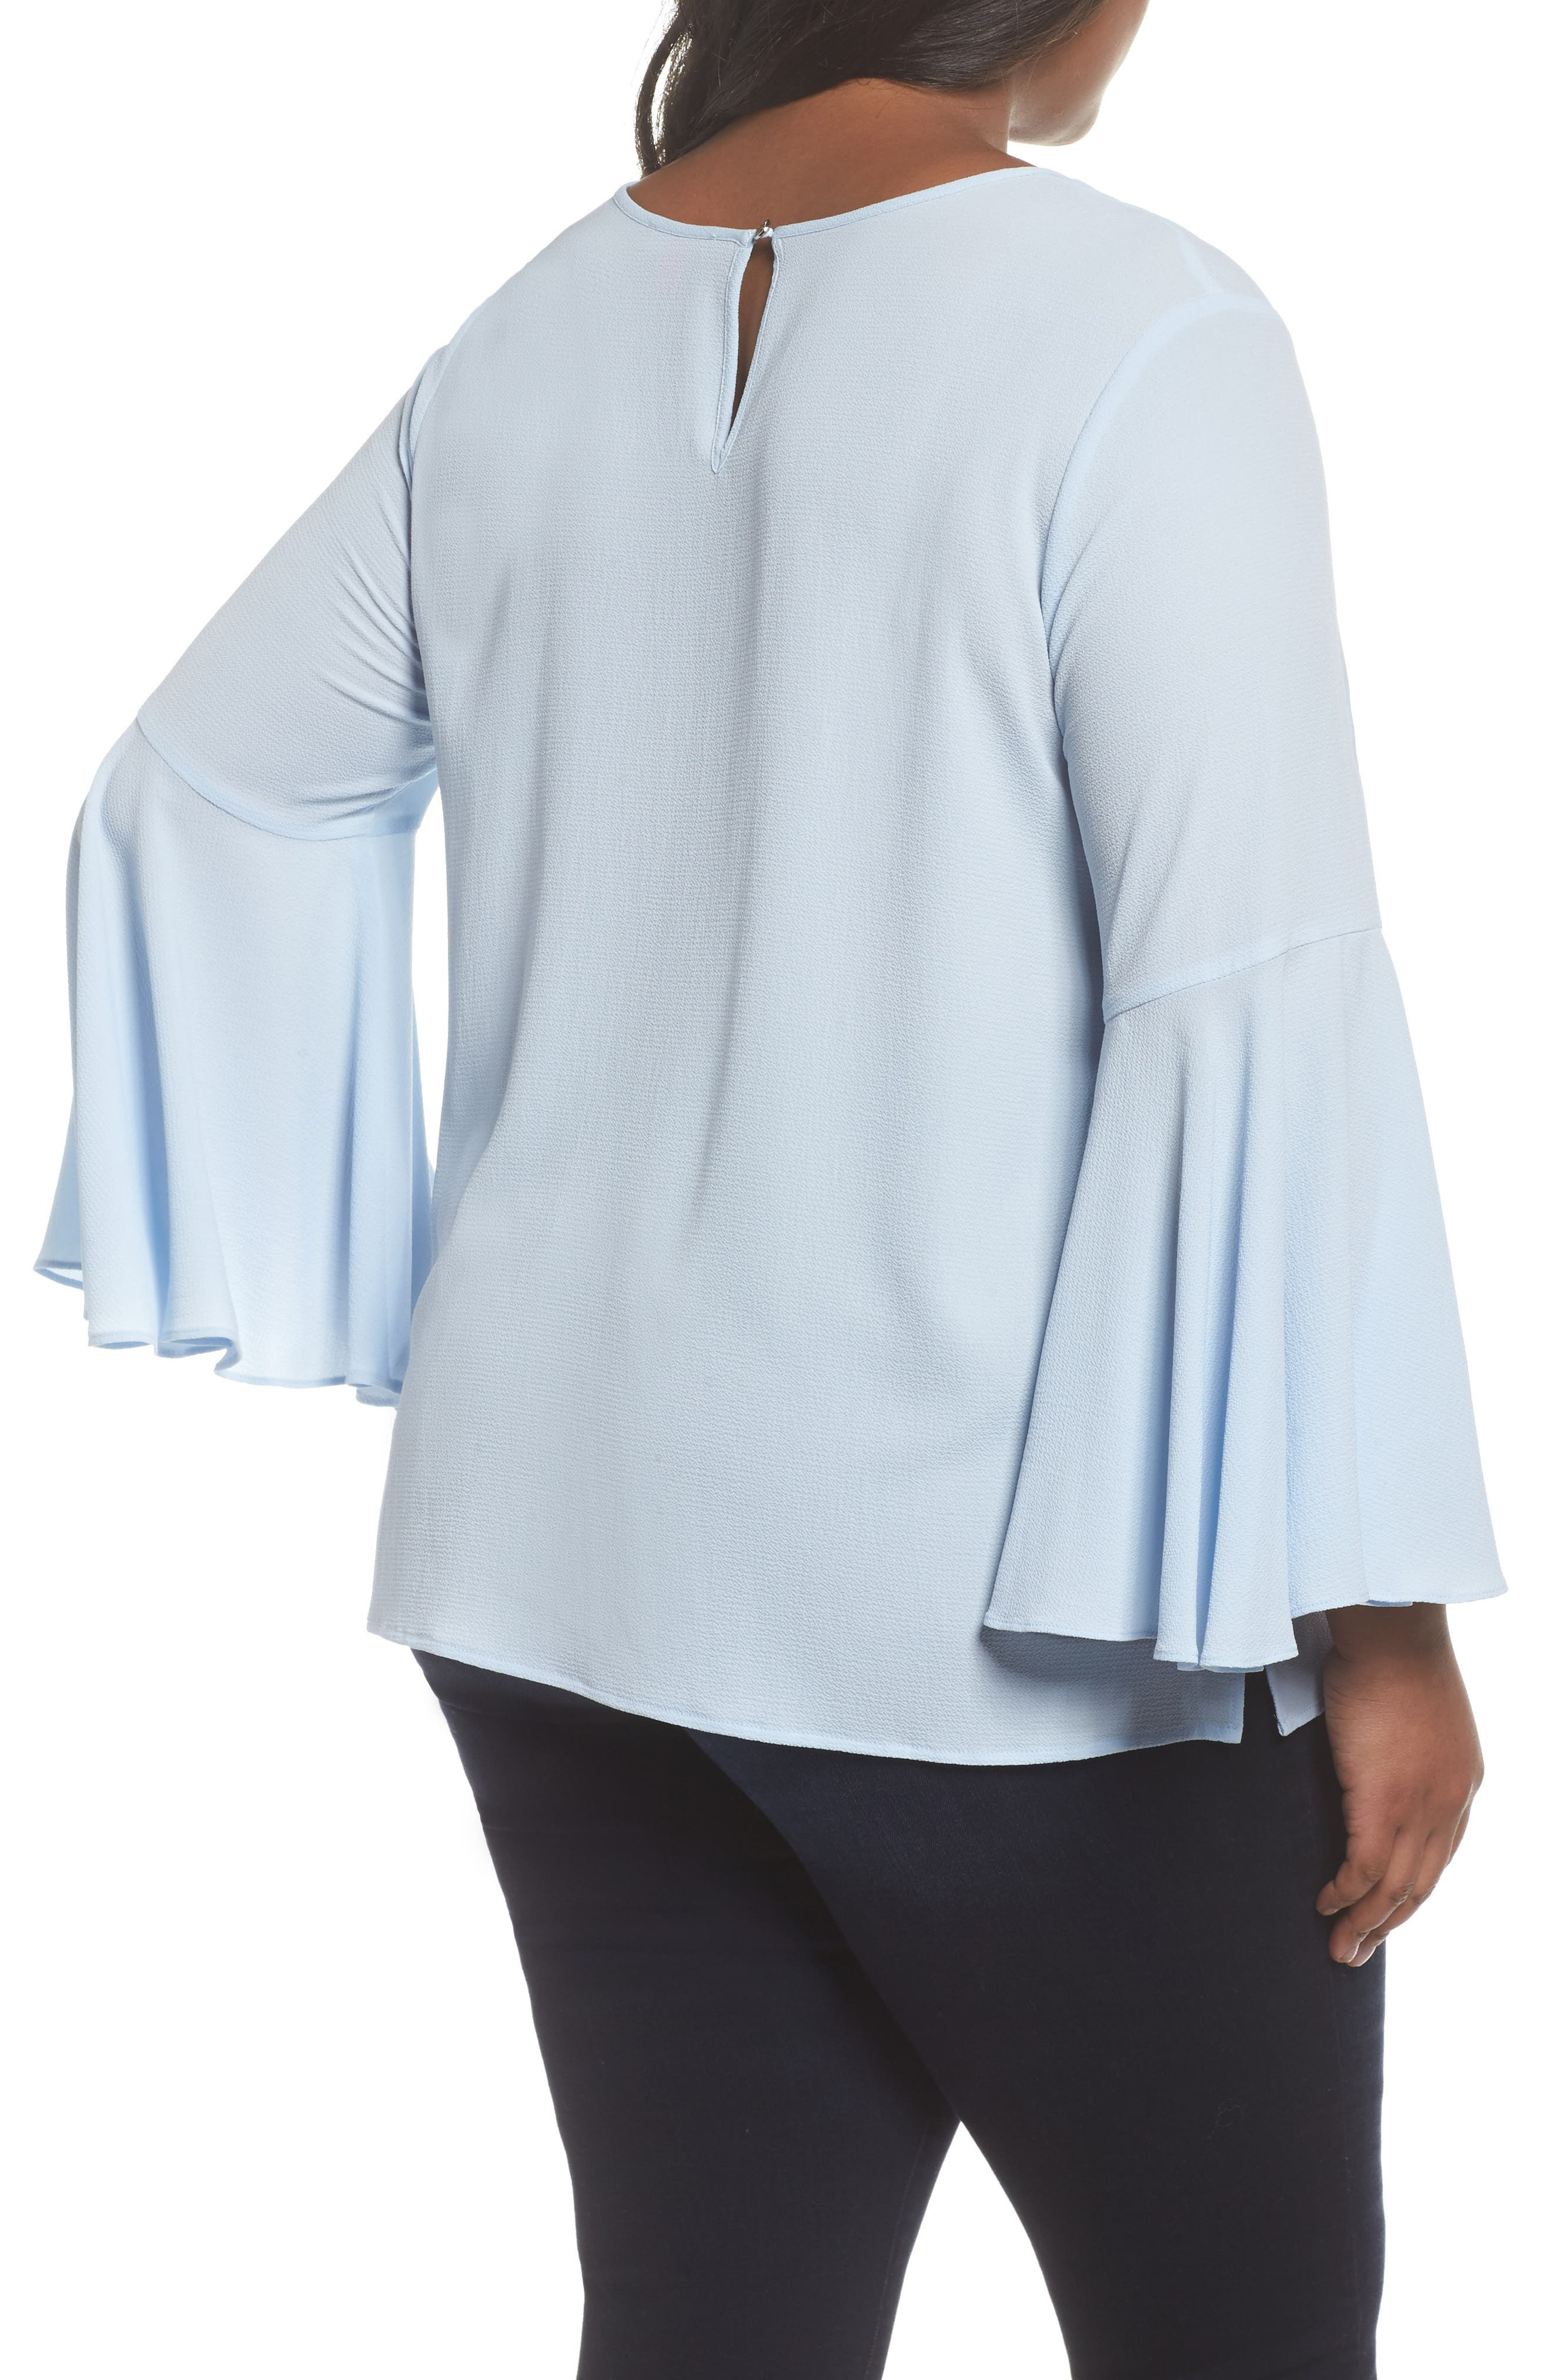 Bell Sleeve Blouse,                             Alternate thumbnail 2, color,                             LIGHT CAMEO BLUE